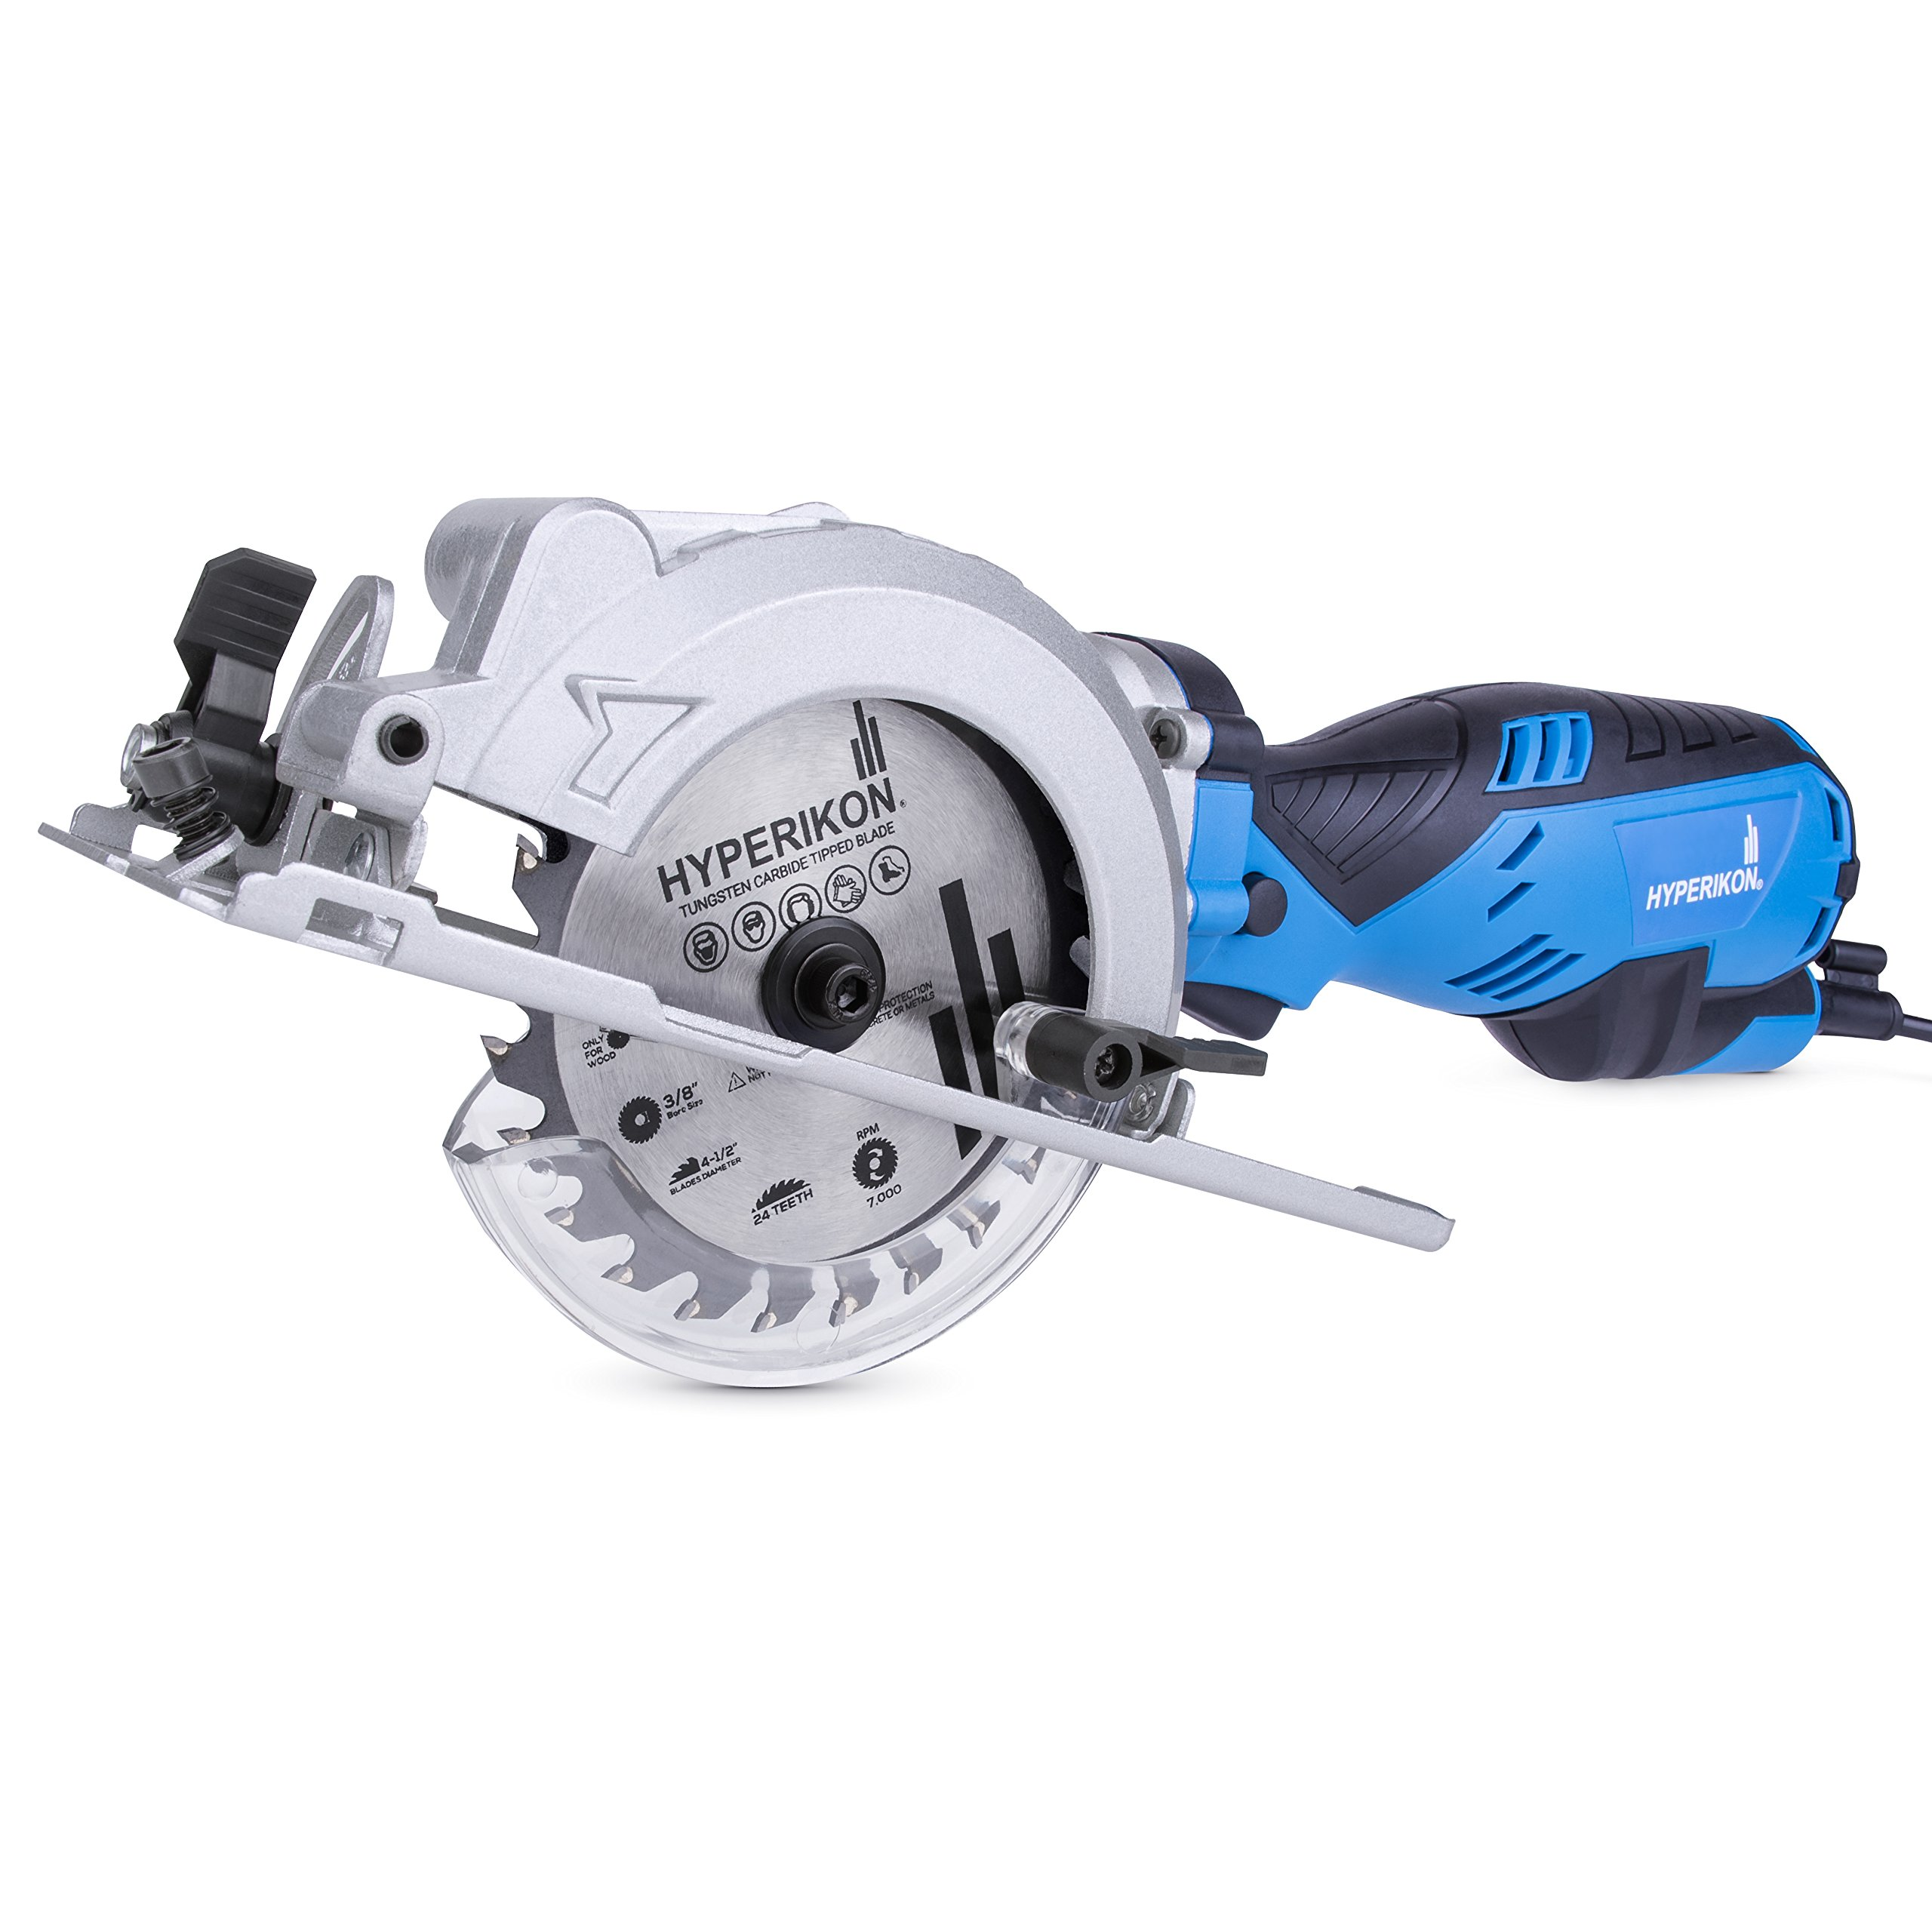 """Hyperikon Electric Compact Circular Saw Corded 4-1/2"""", 5.0 Amp Power, 3500 RPM, 120V Small Circular Saw Worm Drive - Case, 24T TCT Blade, Rip Guide, Dust Port Vacuum Adaptor, Hex Key"""